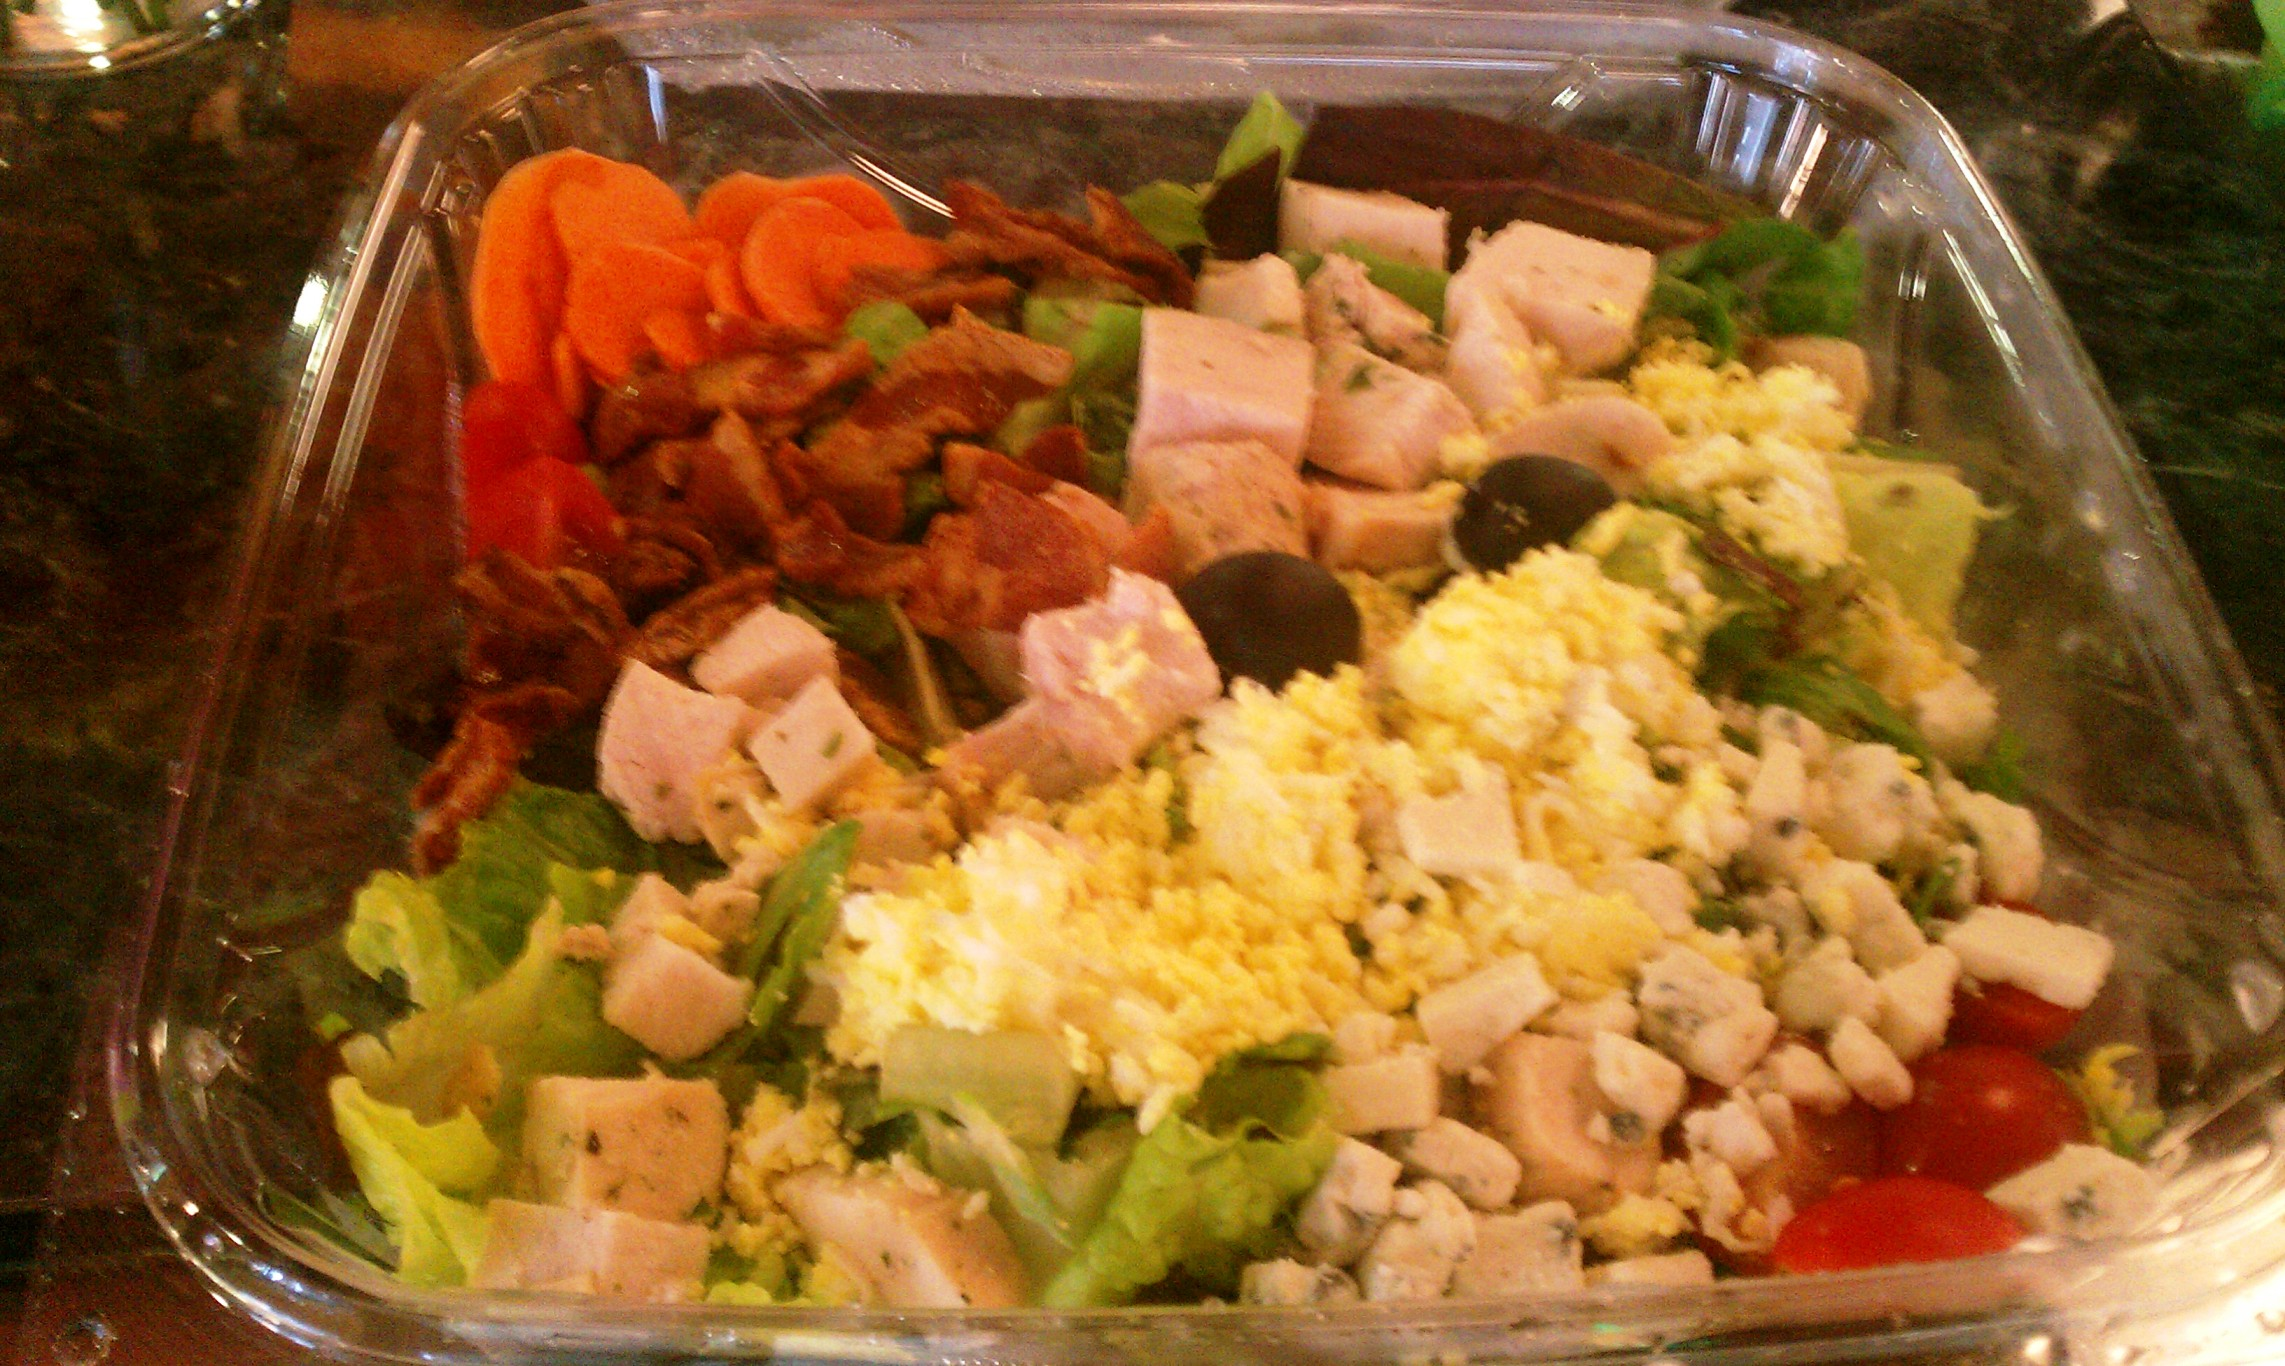 Deliciously Fresh Chicken Cobb Salad with Bacon, Cheese and More